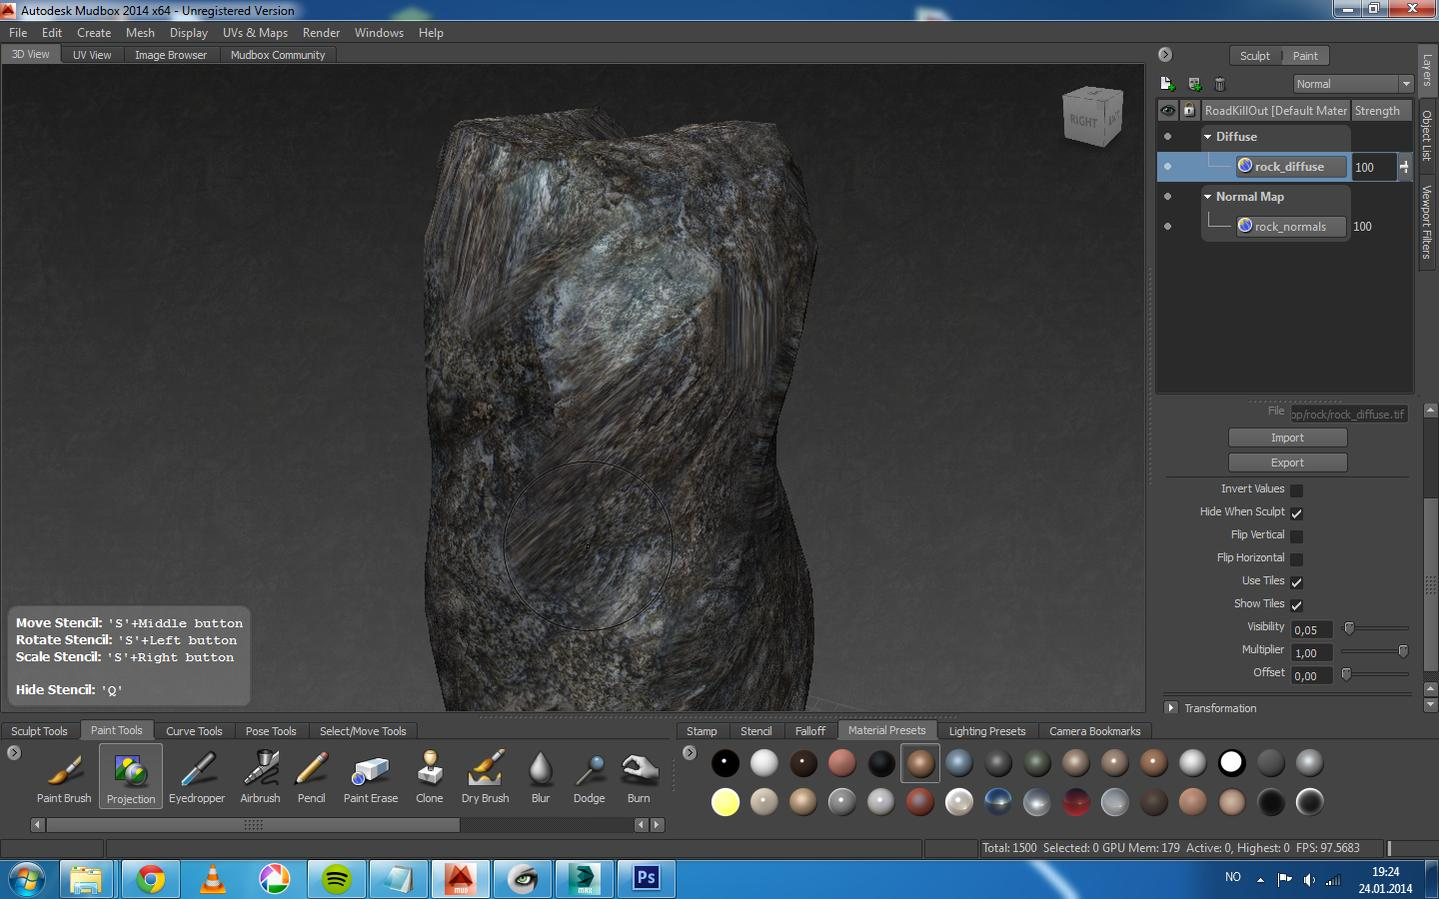 Problems with texture stretching while painting rock in Mudbox